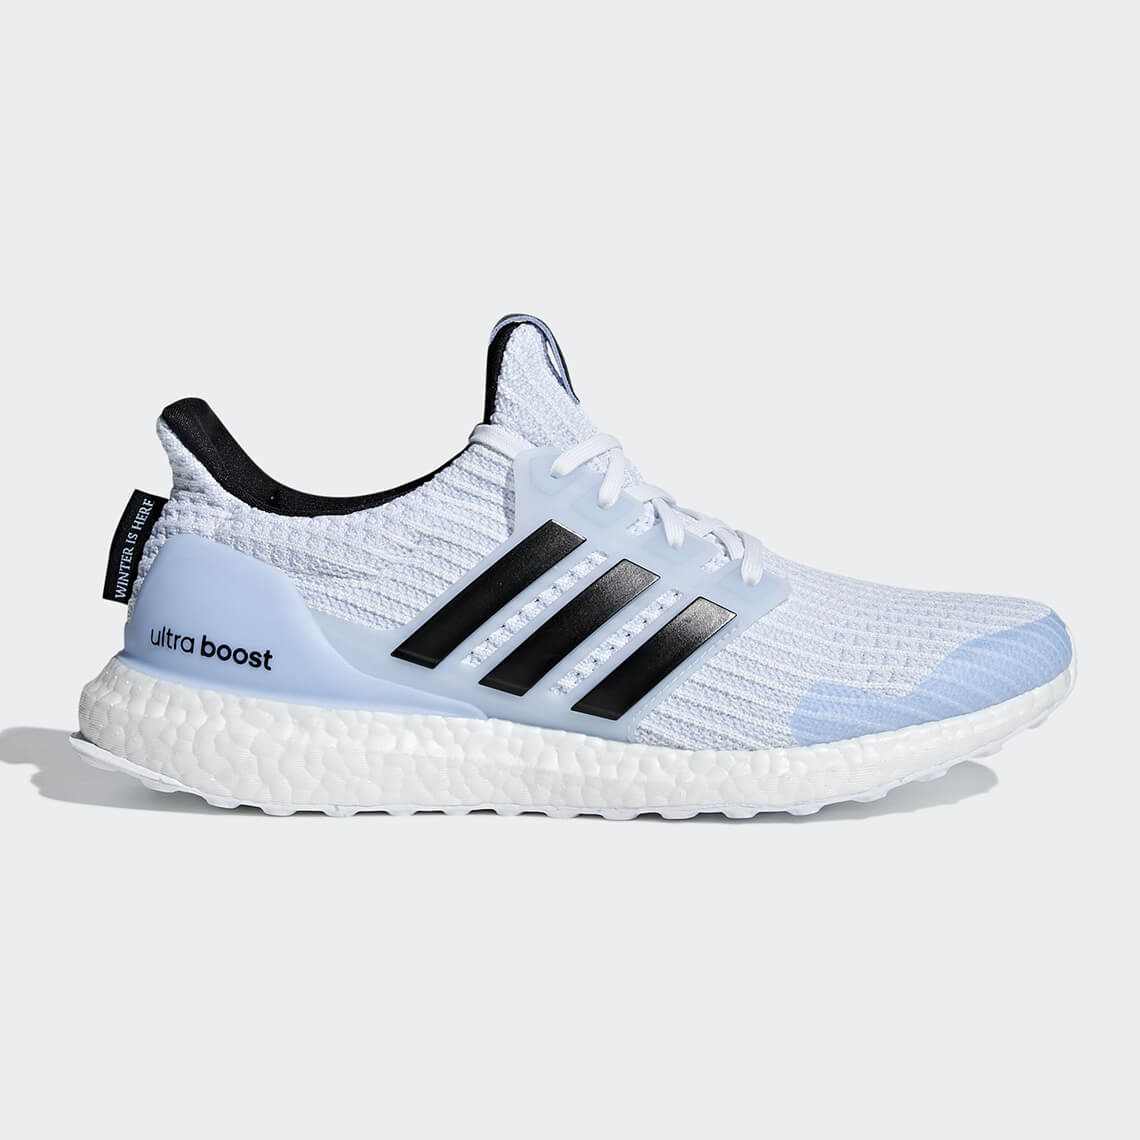 adidas ultra boost game of thrones white walkers EE3708 1